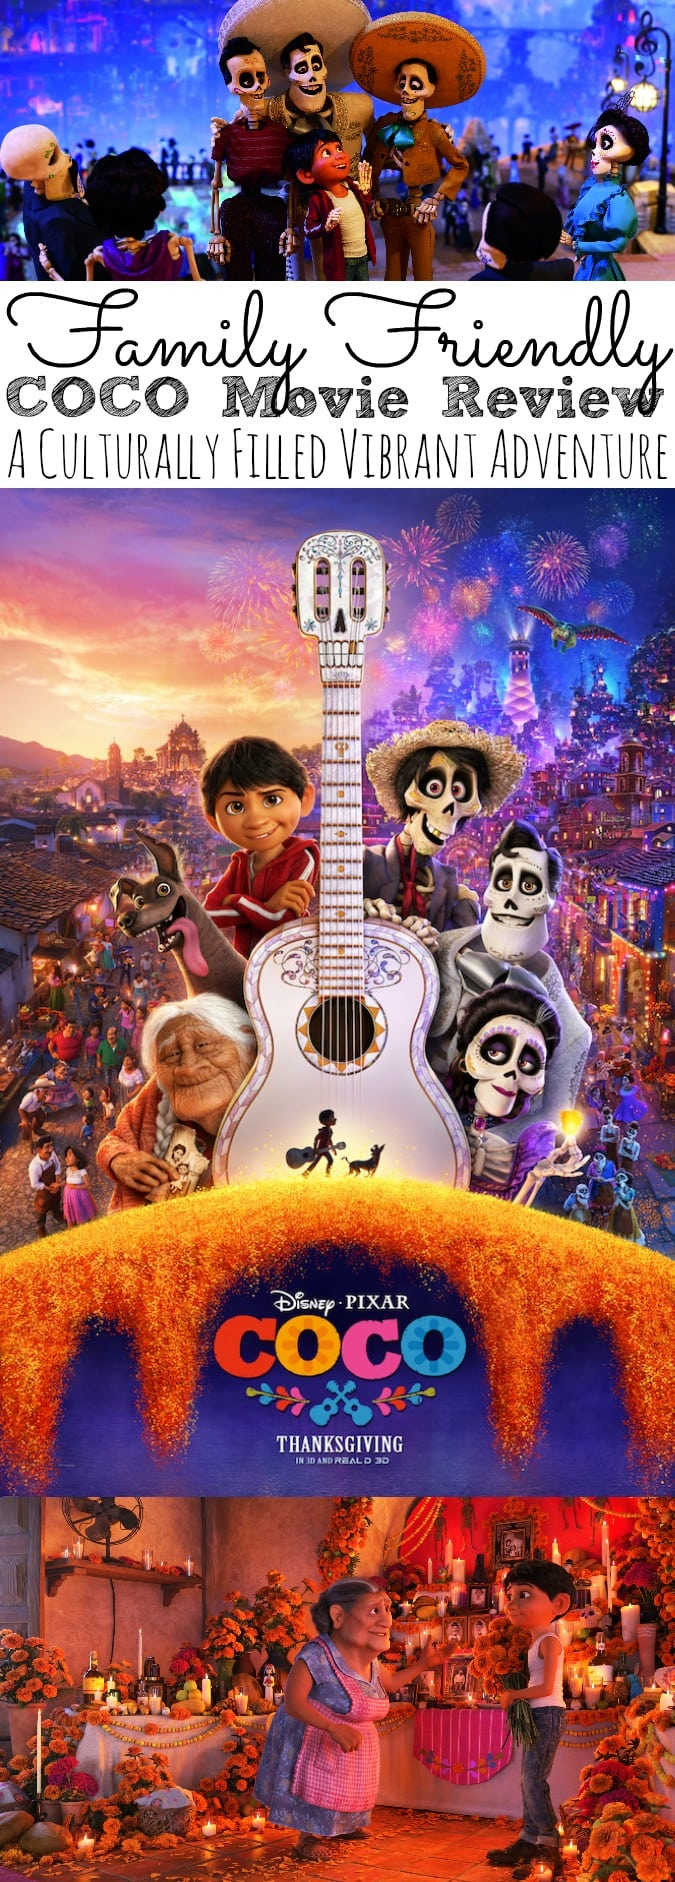 Family Friendly COCO Movie Review